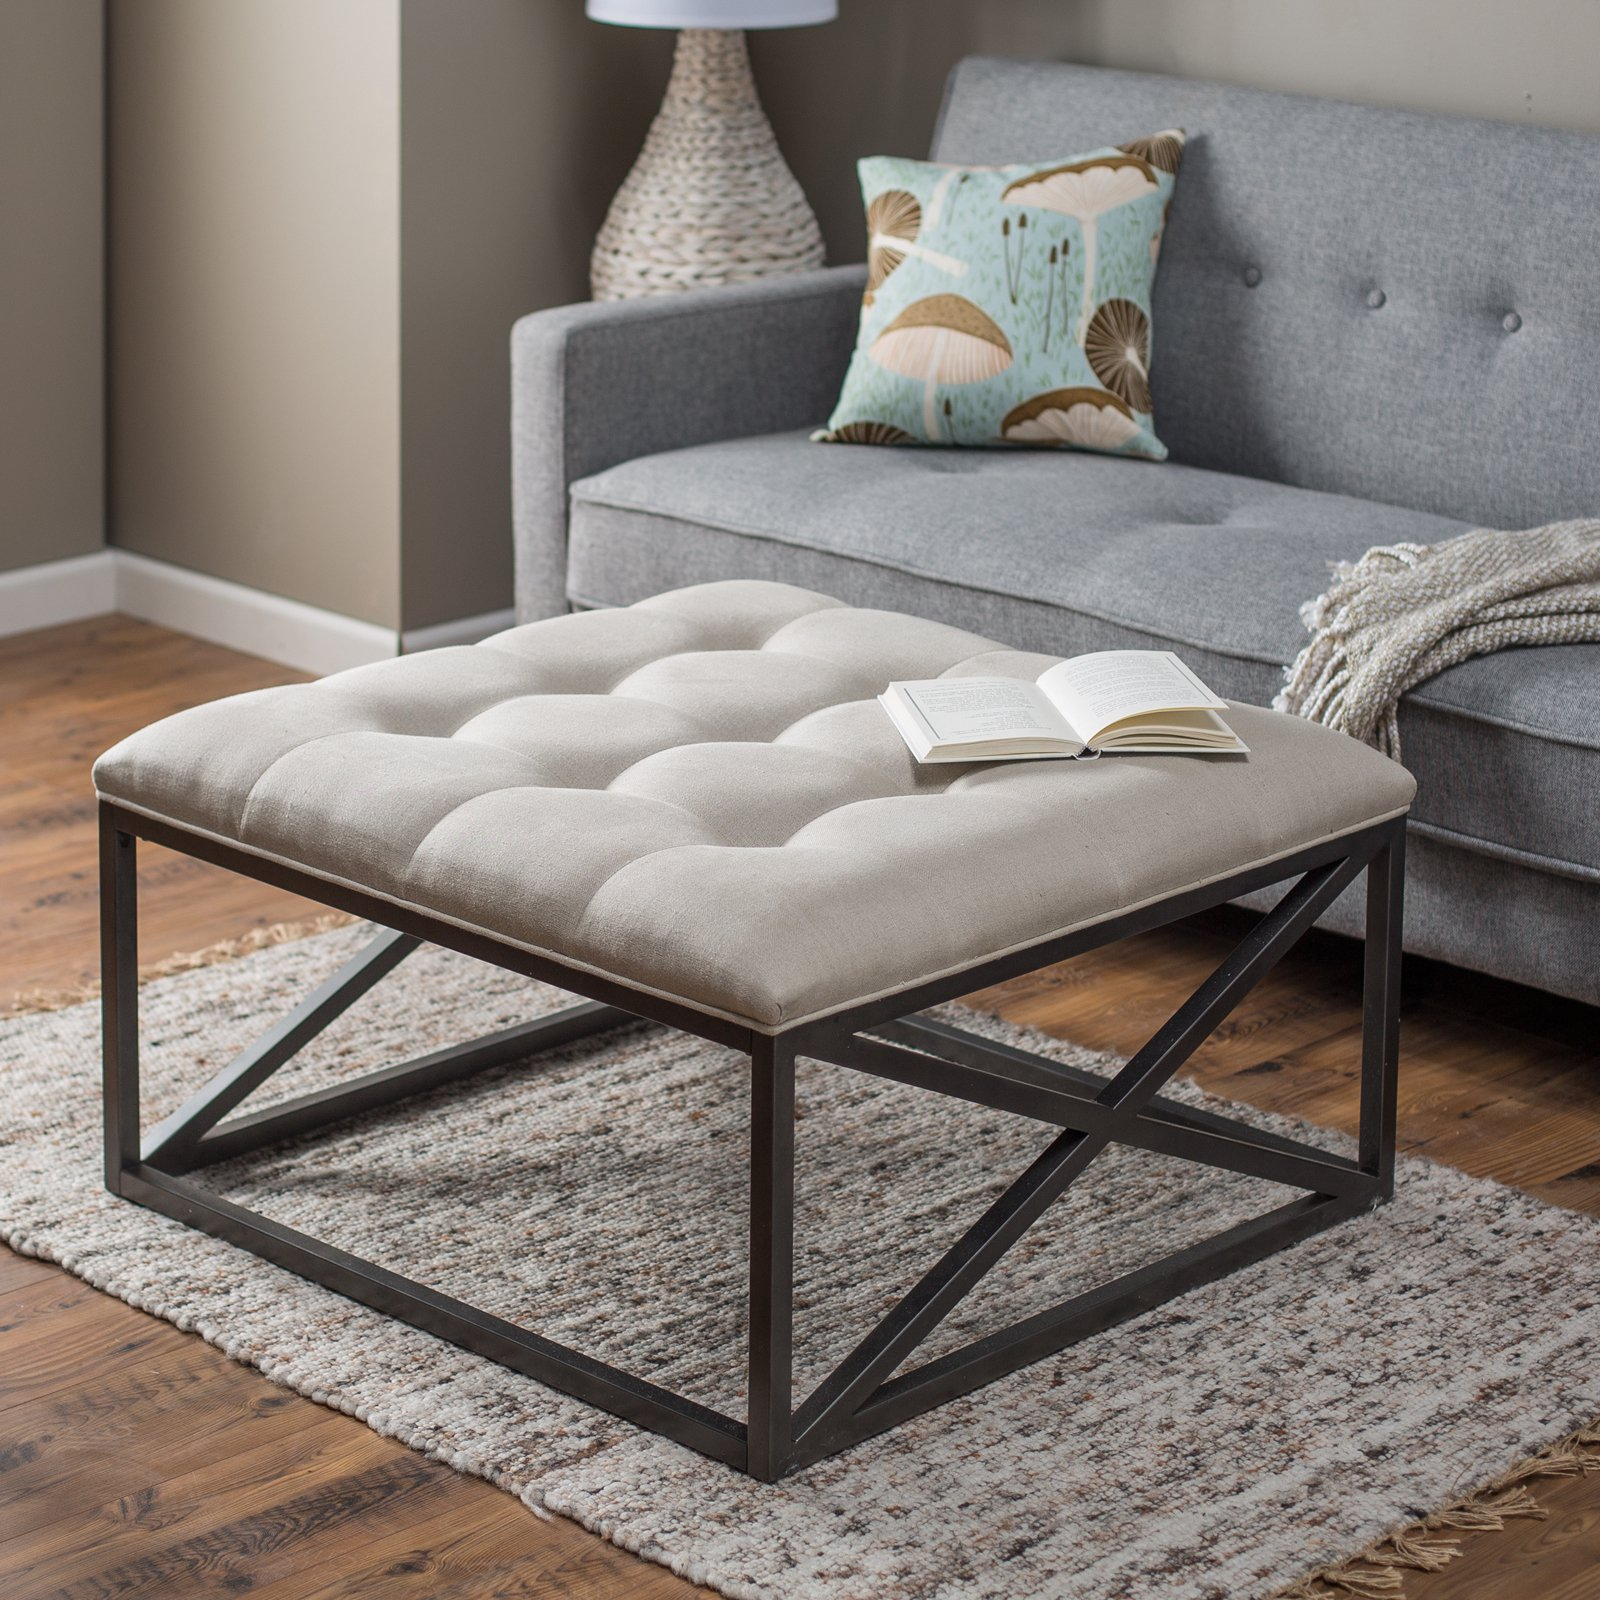 Ottoman Used As Coffee Table: 8 Plush Tufted Ottomans To Add Comfort And Functionality